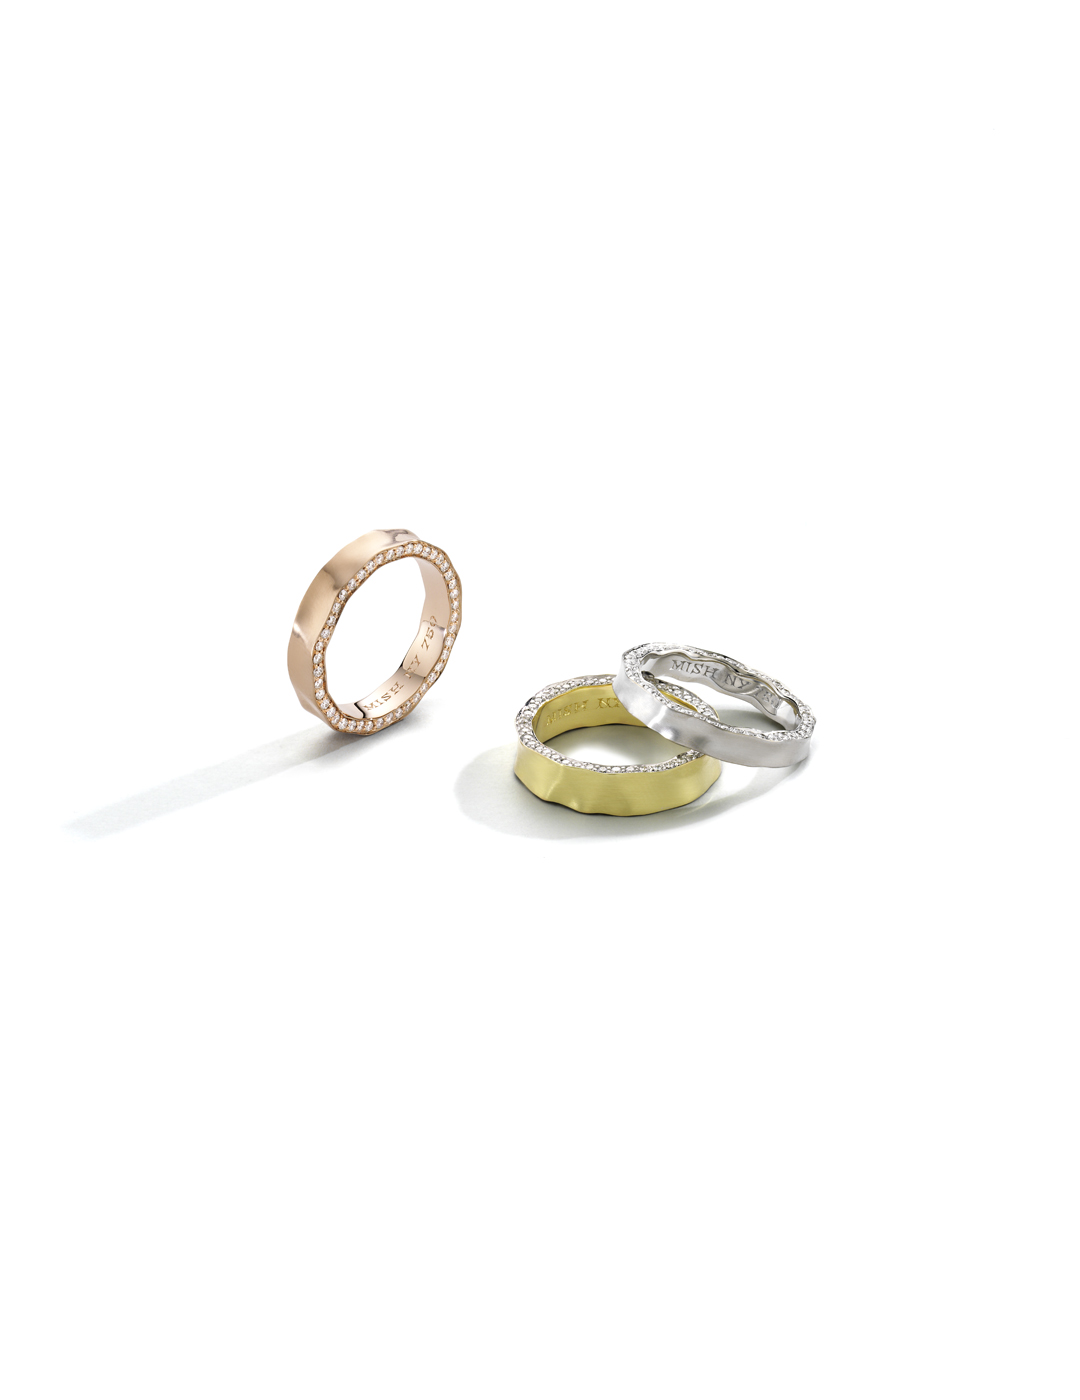 mish_products_rings_Bond Bow-WG-narrow-2